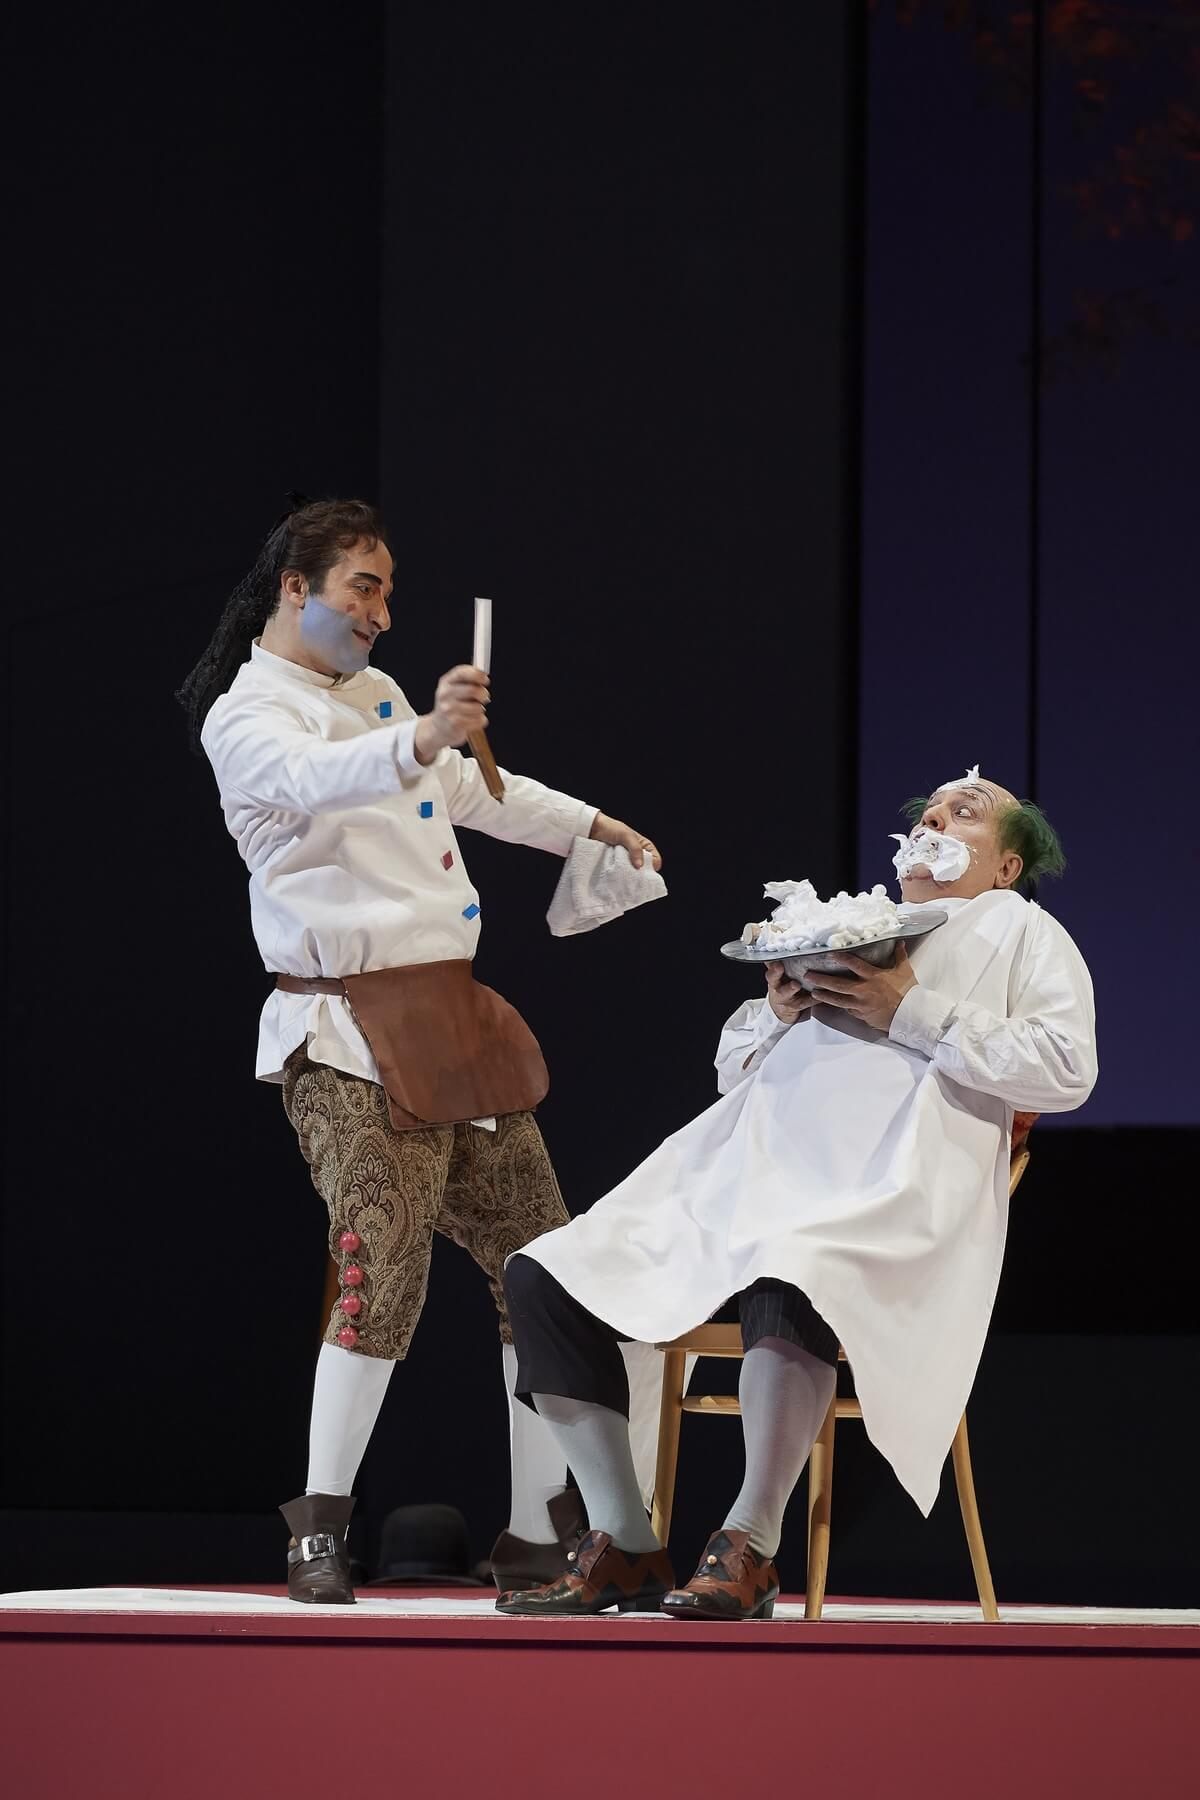 (l-r) Vito Priante as Figaro and Renato Girolami as Bartolo in the Canadian Opera Company's production of The Barber of Seville, 2020, (Photo: Michael Cooper)